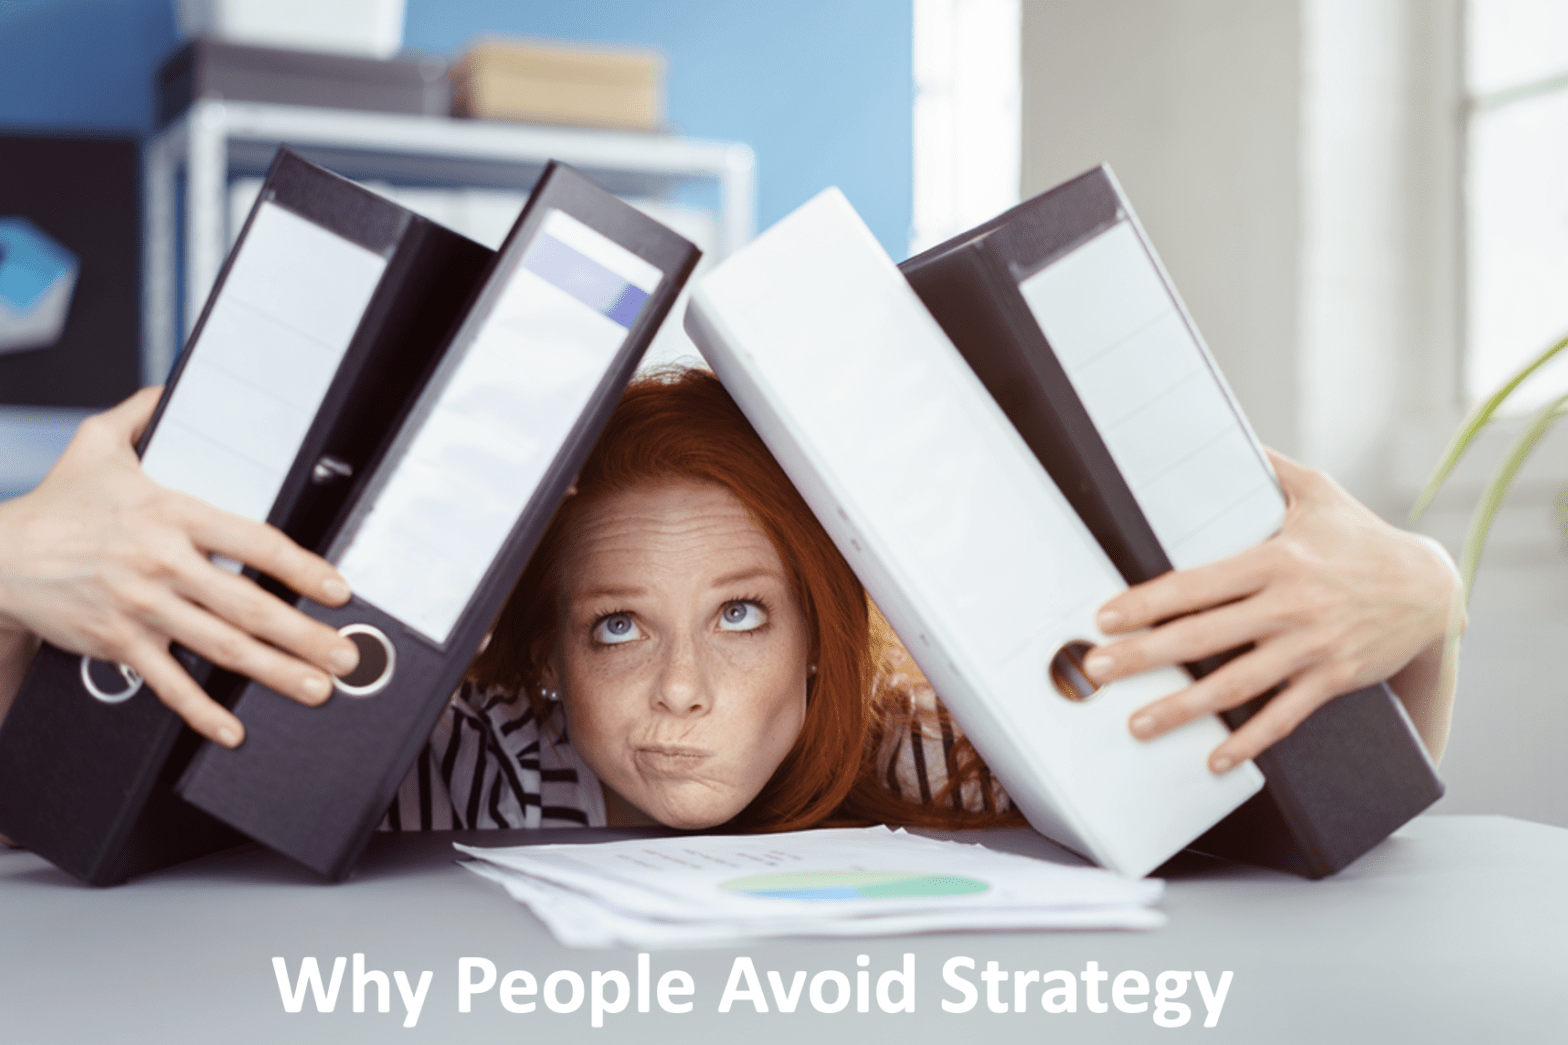 how to start a content strategy - Woman weighed down by 4 3-inch binders on her head